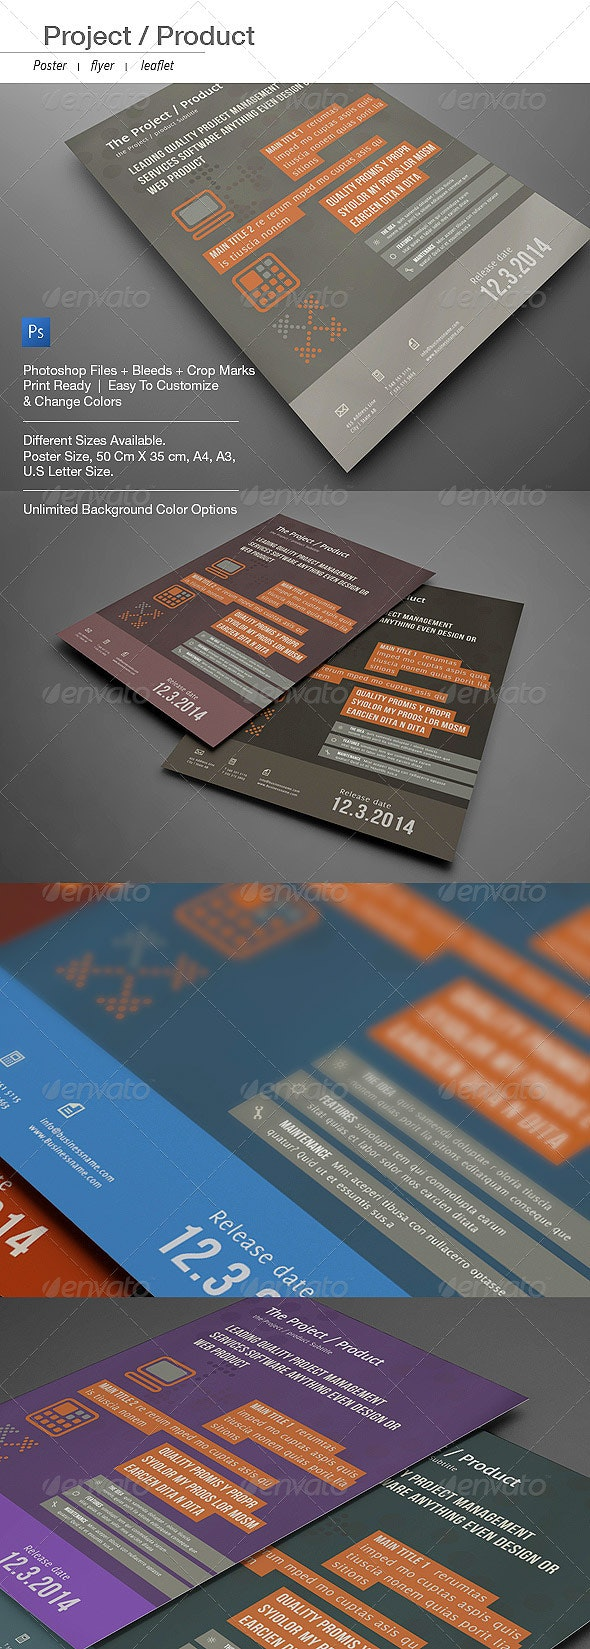 Corporate Pro Poster, Flyer, Leaflet - Corporate Flyers